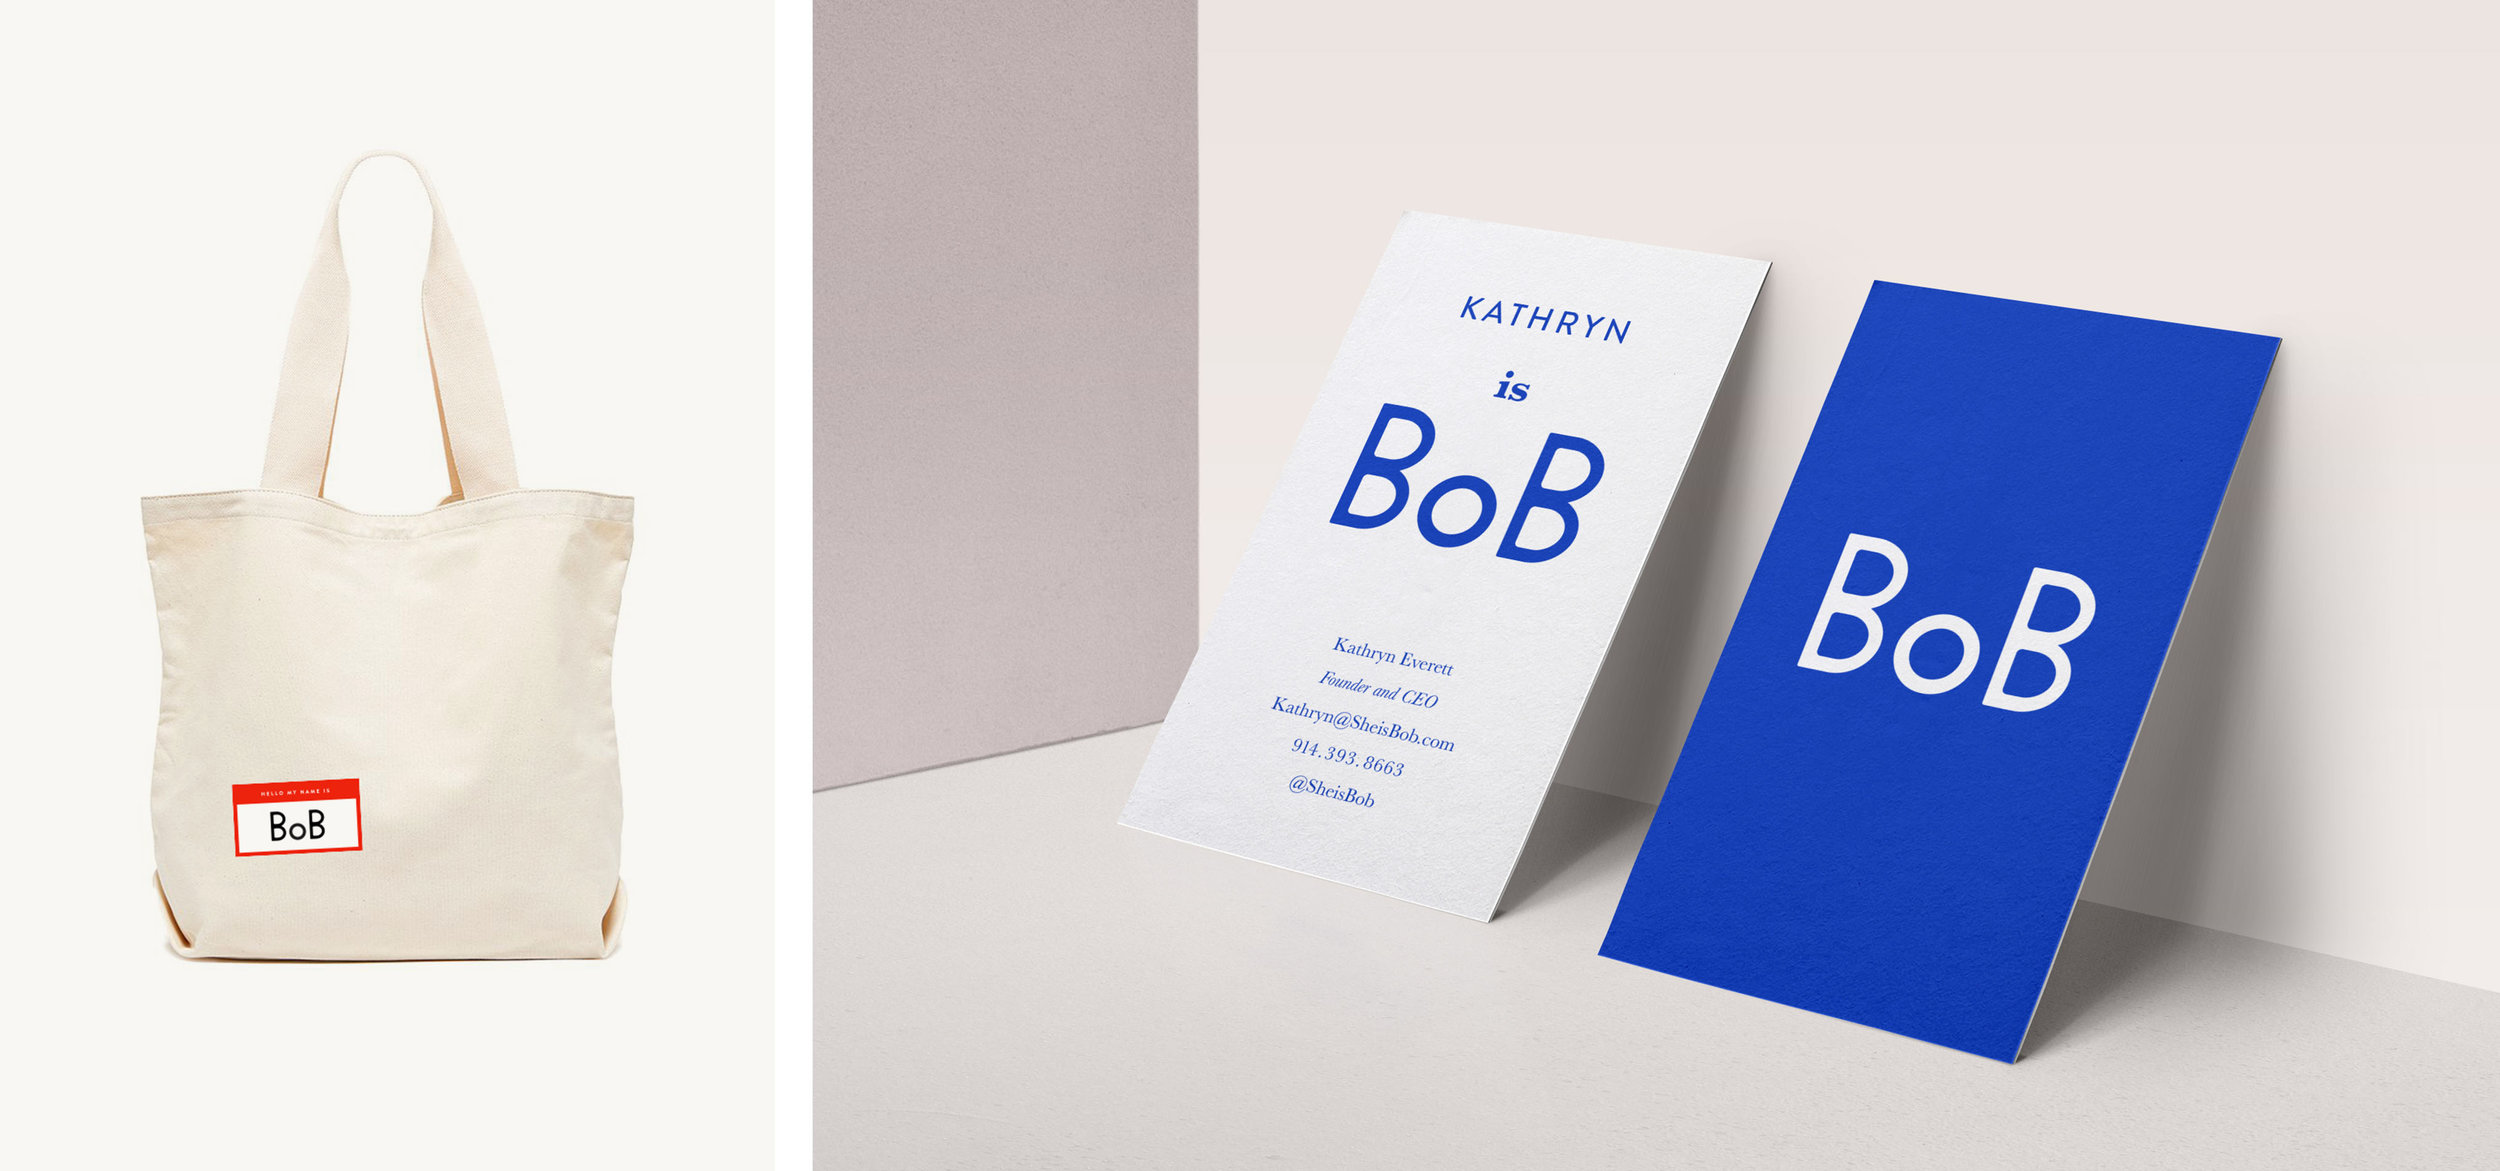 Site_BOB_business card and tote.jpg